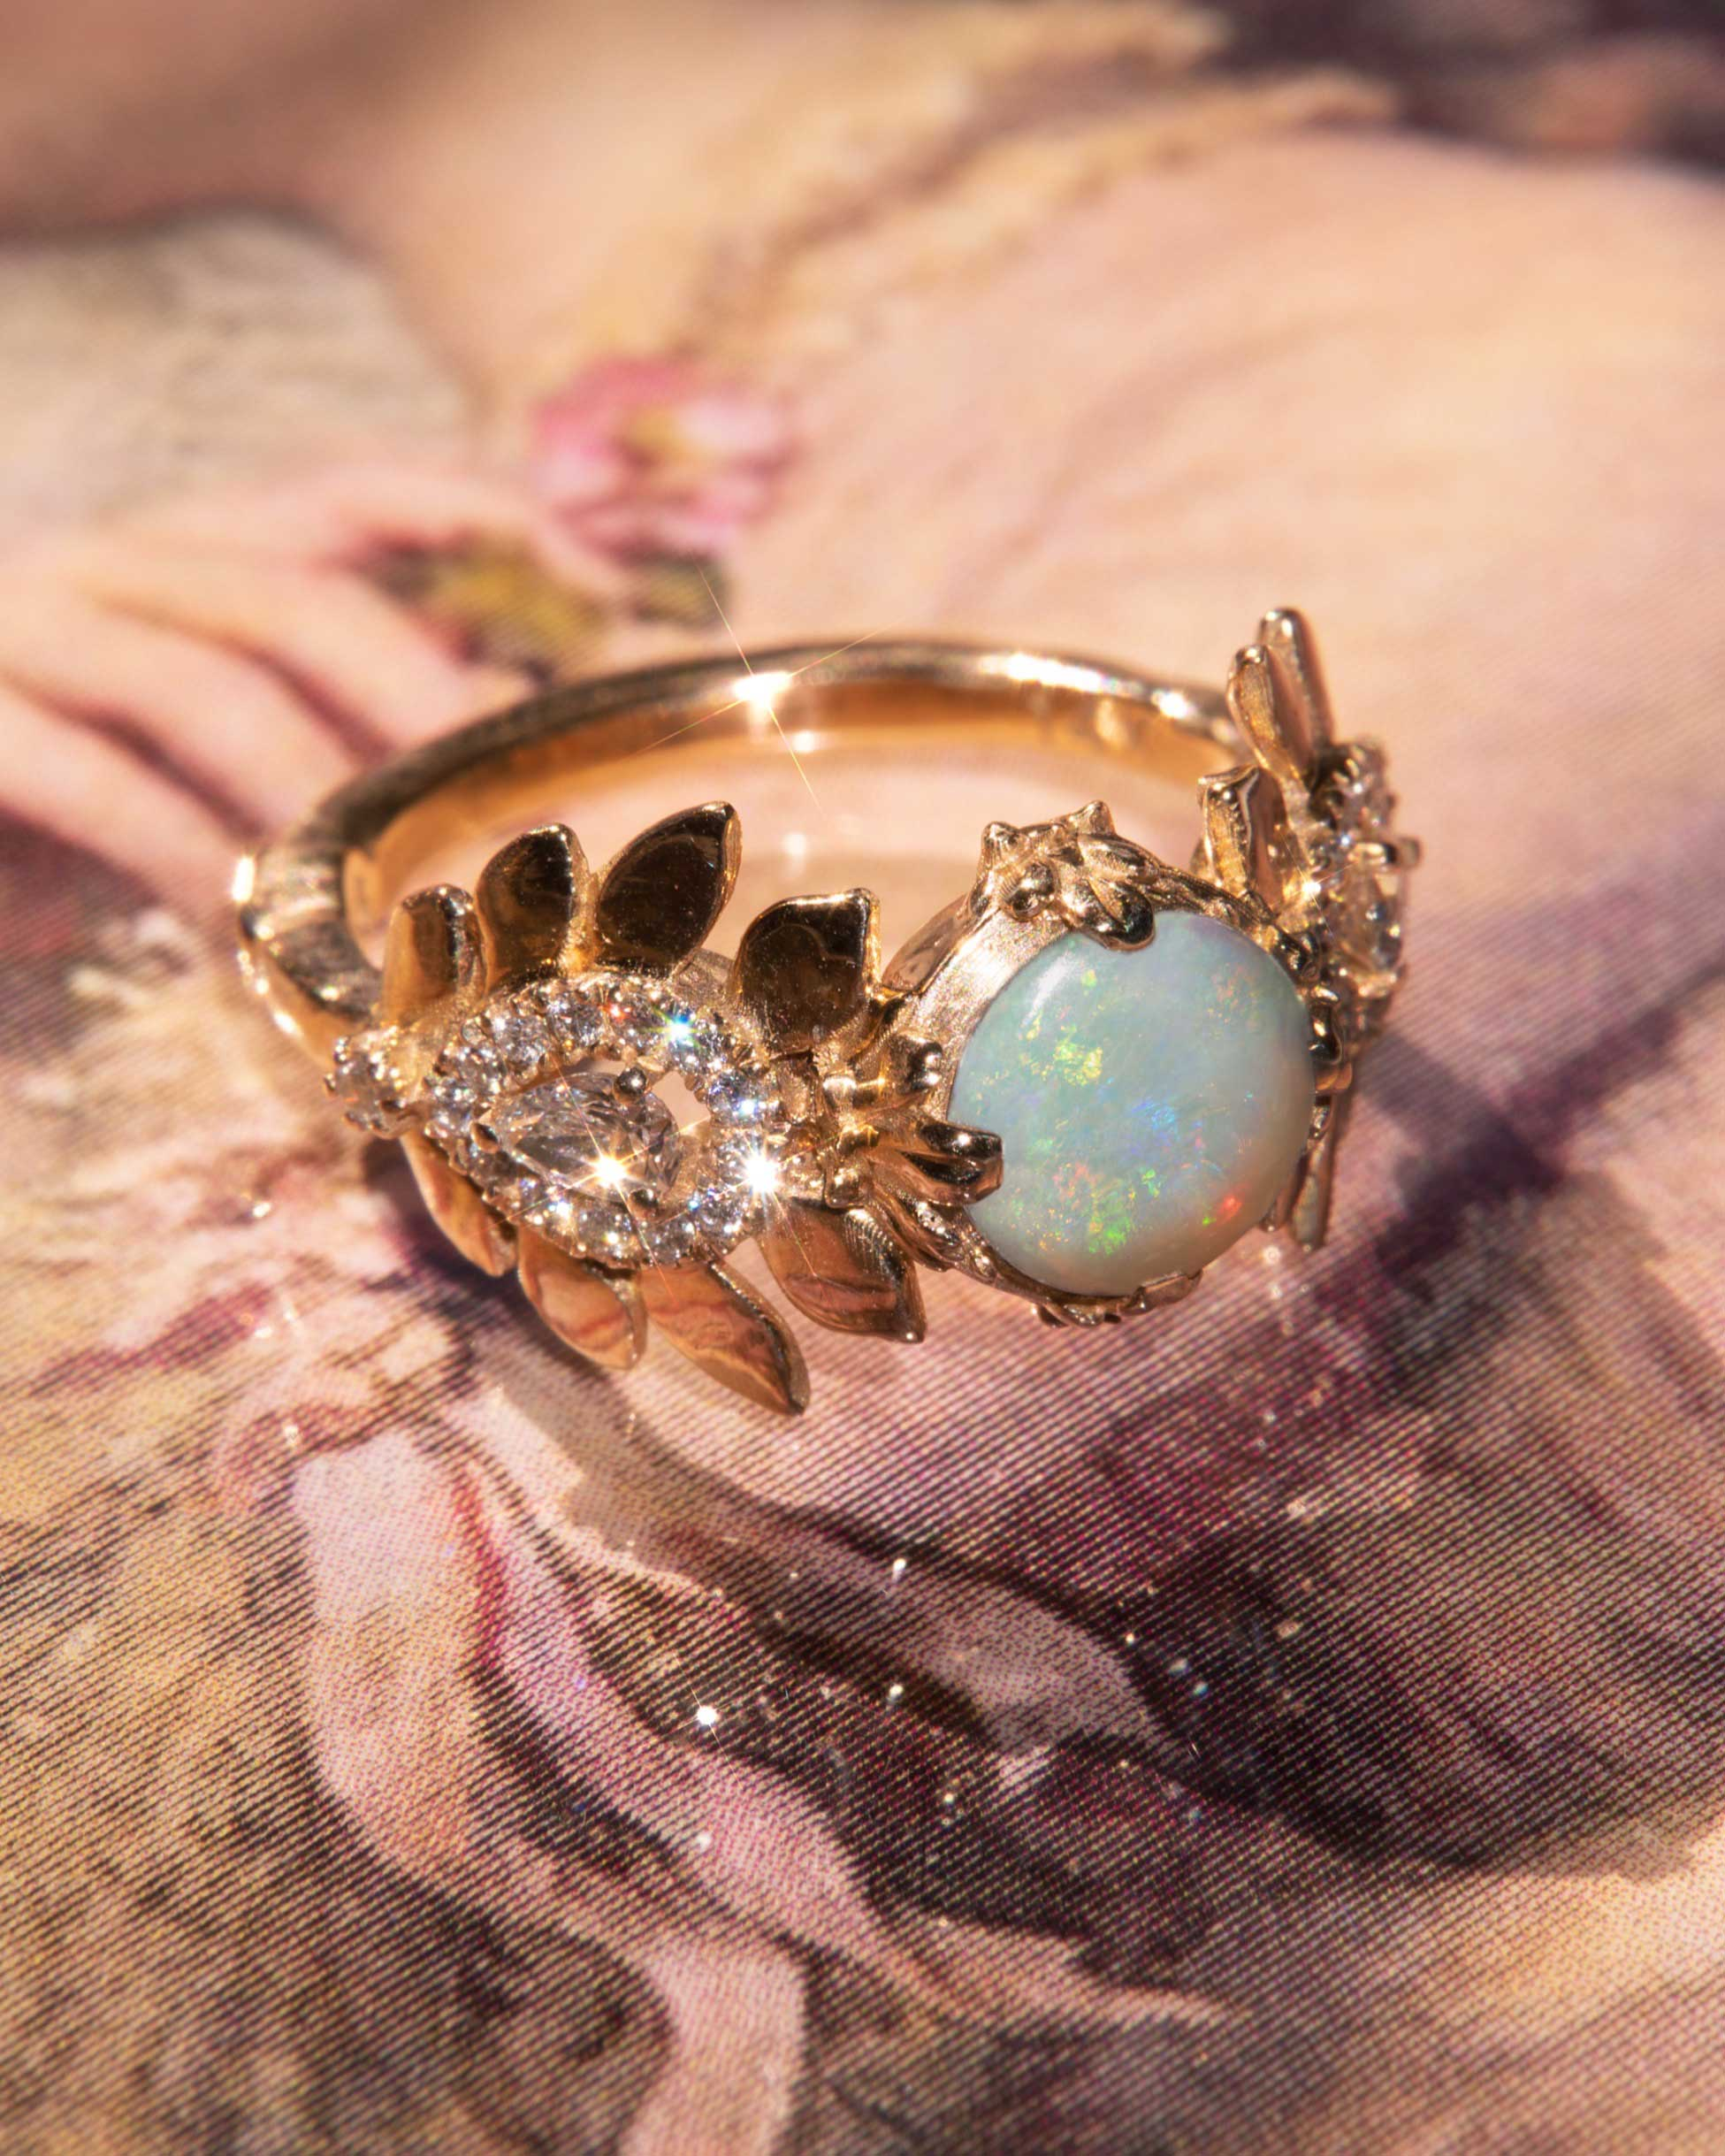 Artifact 04: The Empress in Opal Ring